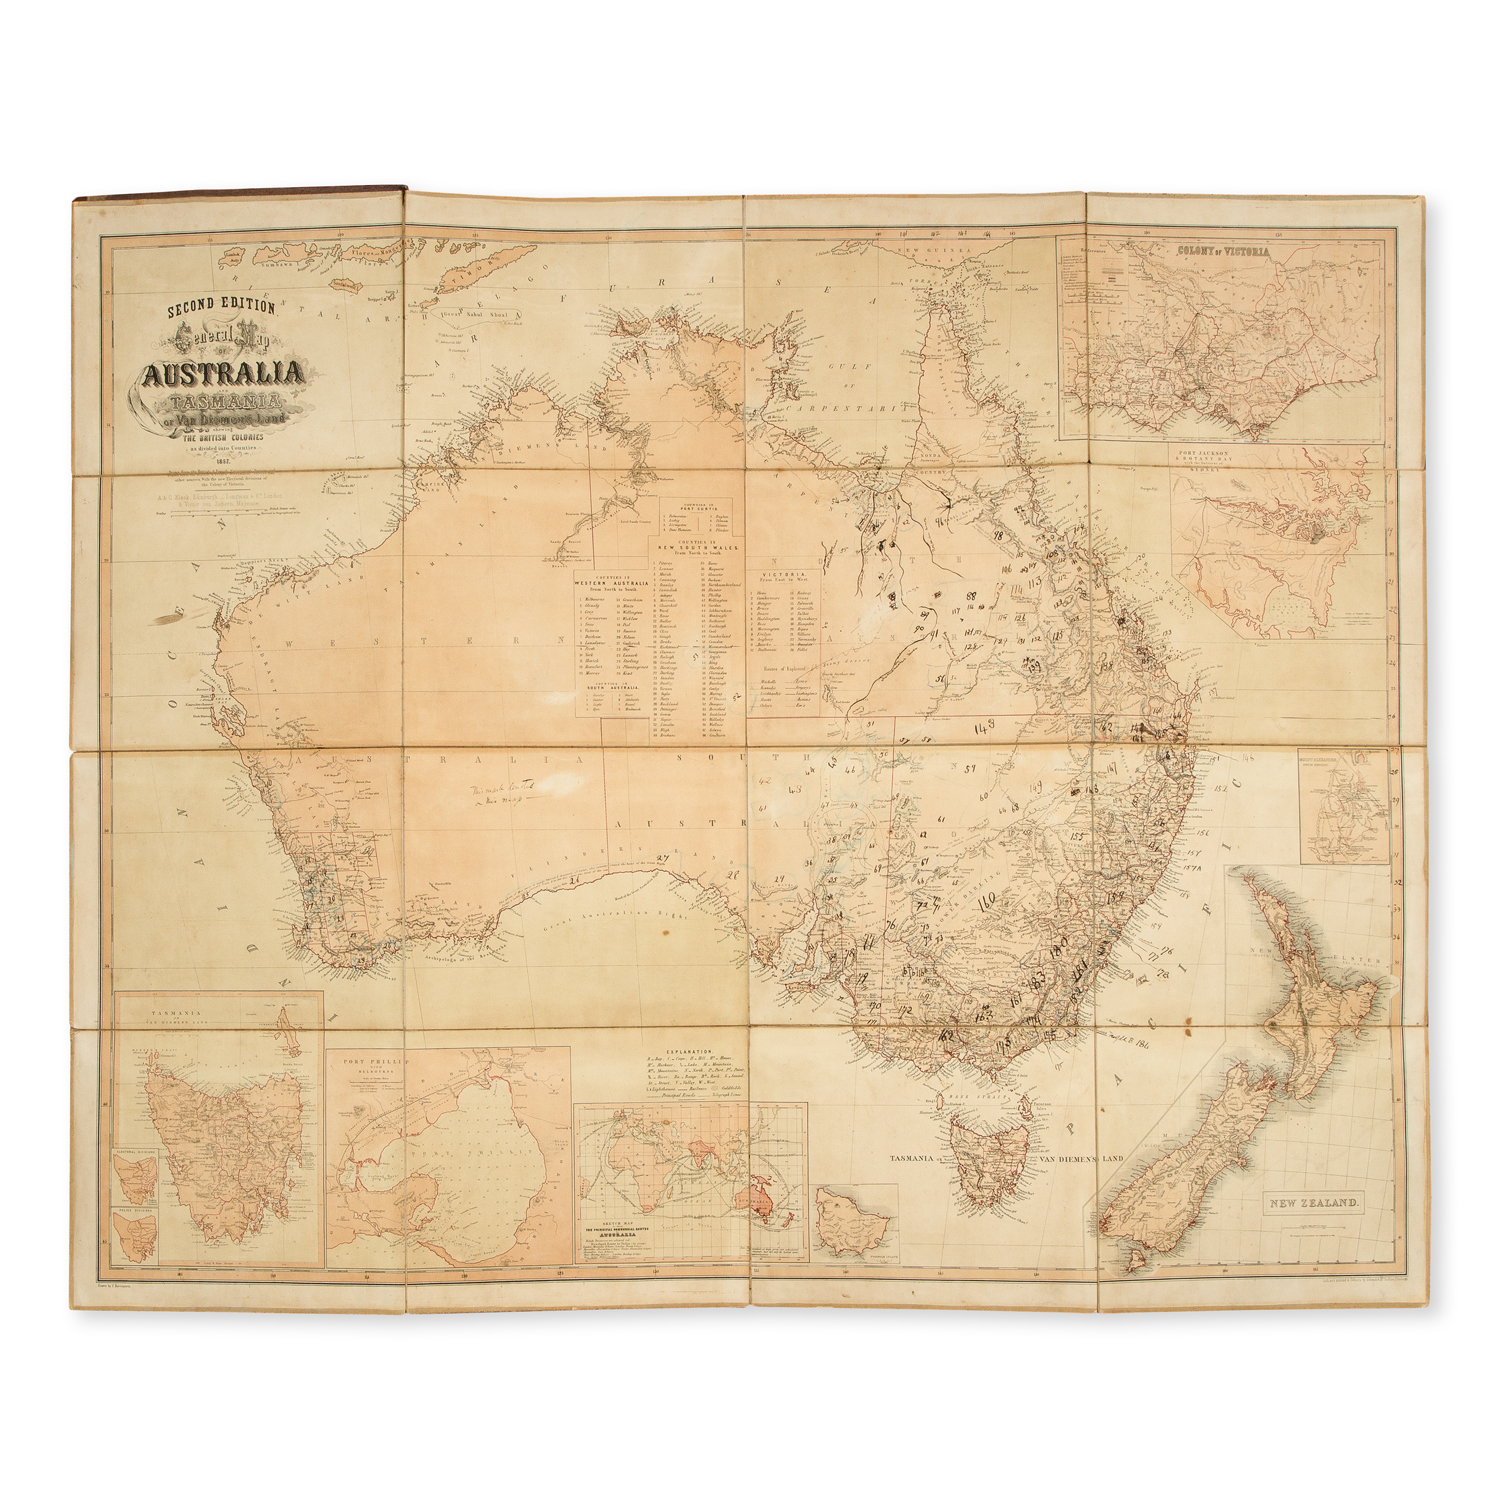 Map Of Australia Tasmania And New Zealand.General Map Of Australia And Tasmania Or Van Diemen S Land Shewing